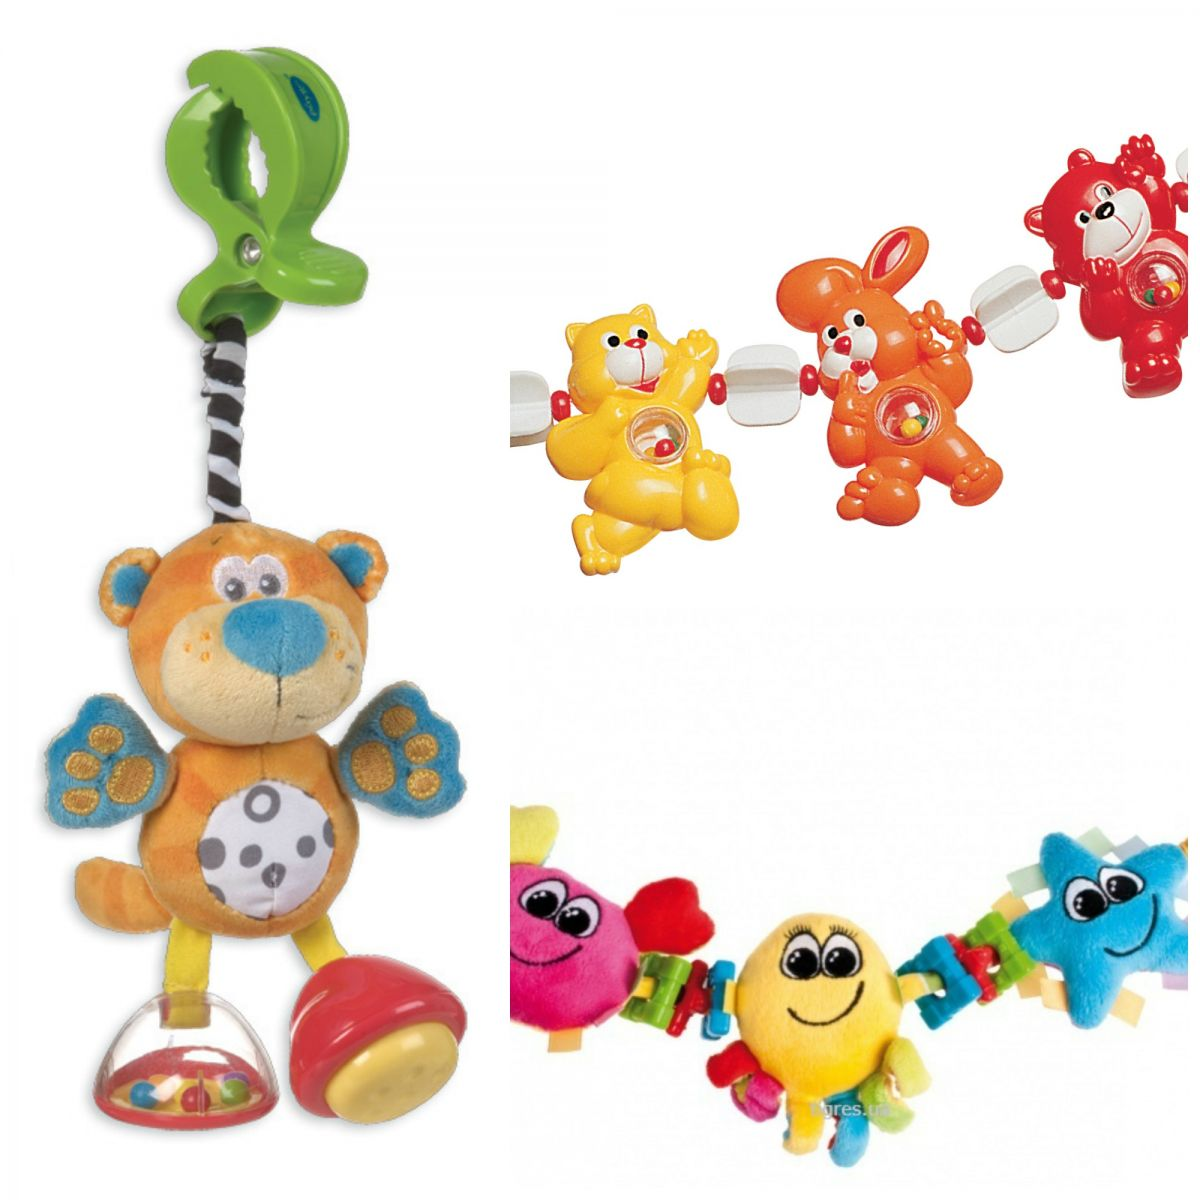 Toys for a month-old baby. Pendants